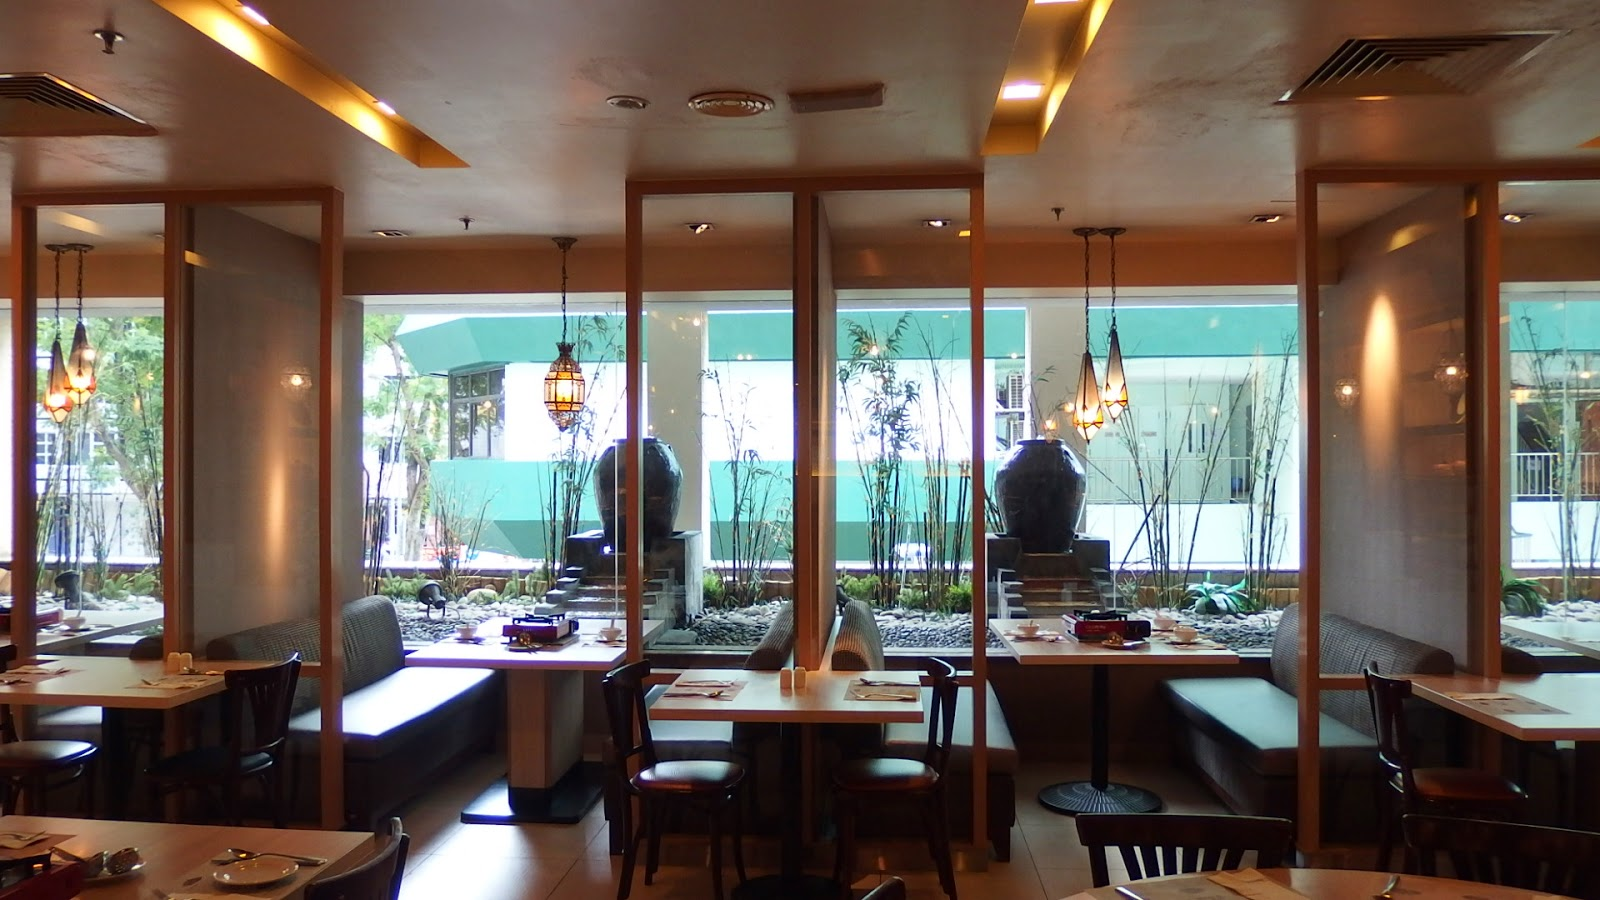 SuMMeR LoVes To Eat! Singapore Food Blog: Lunch Buffet at Spice ...